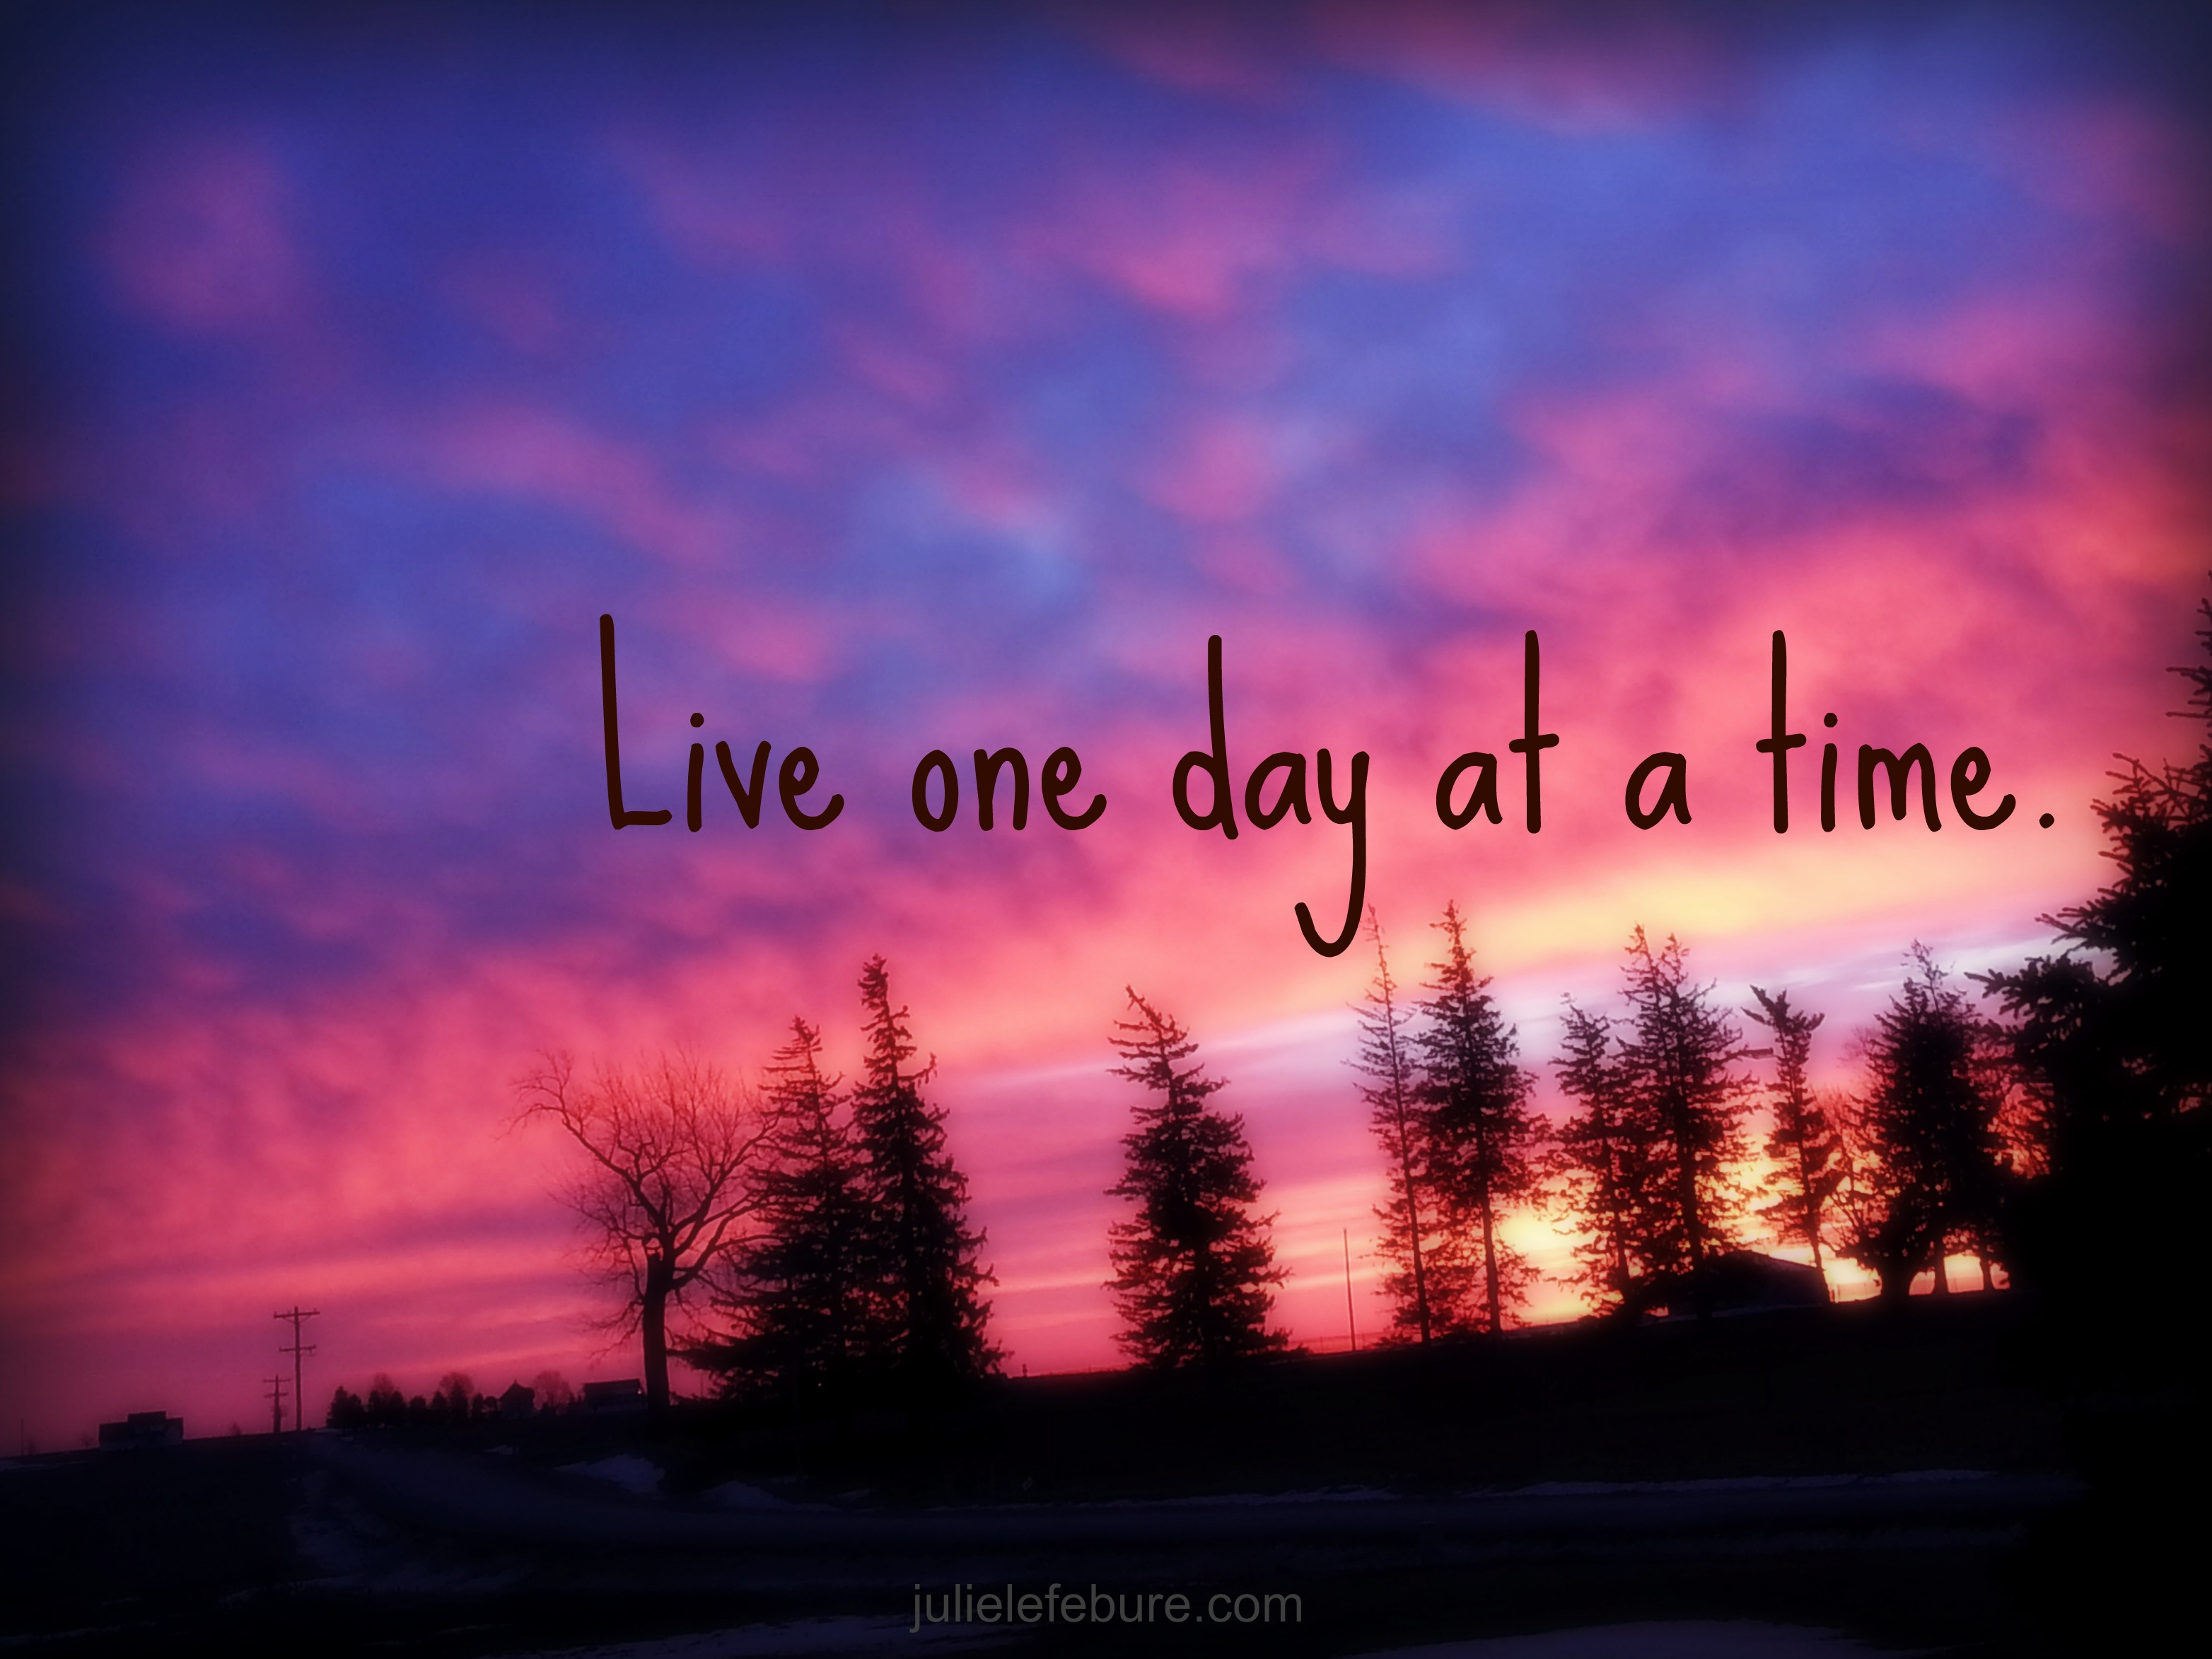 one day at a time julie lefebure